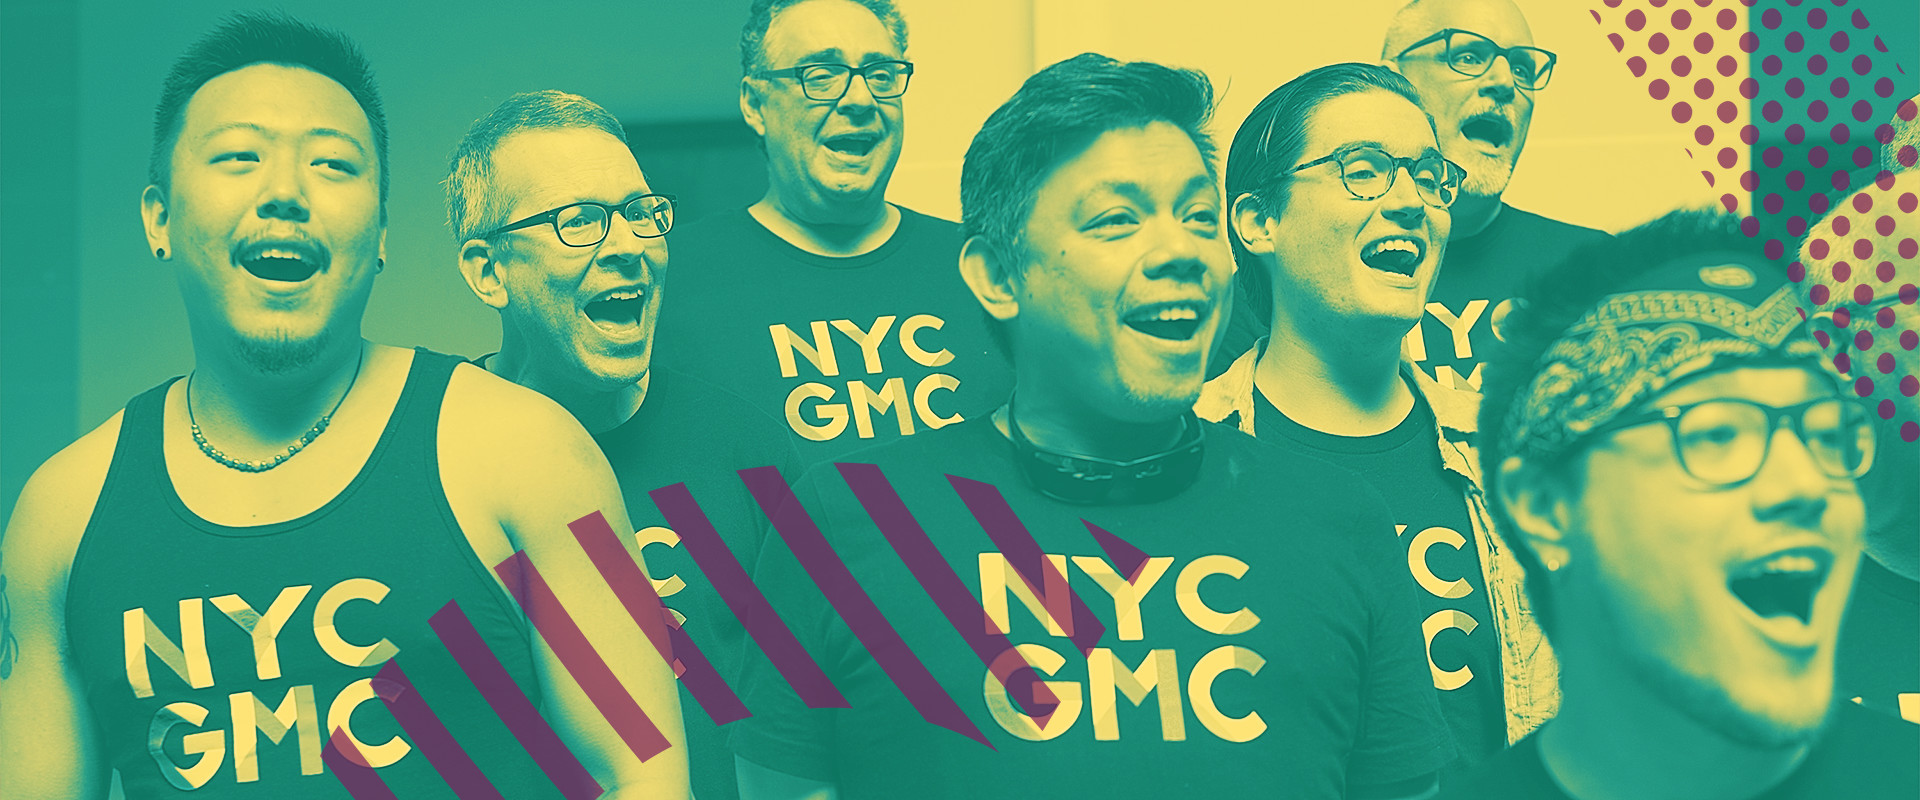 Can't get enough NYCGMC?